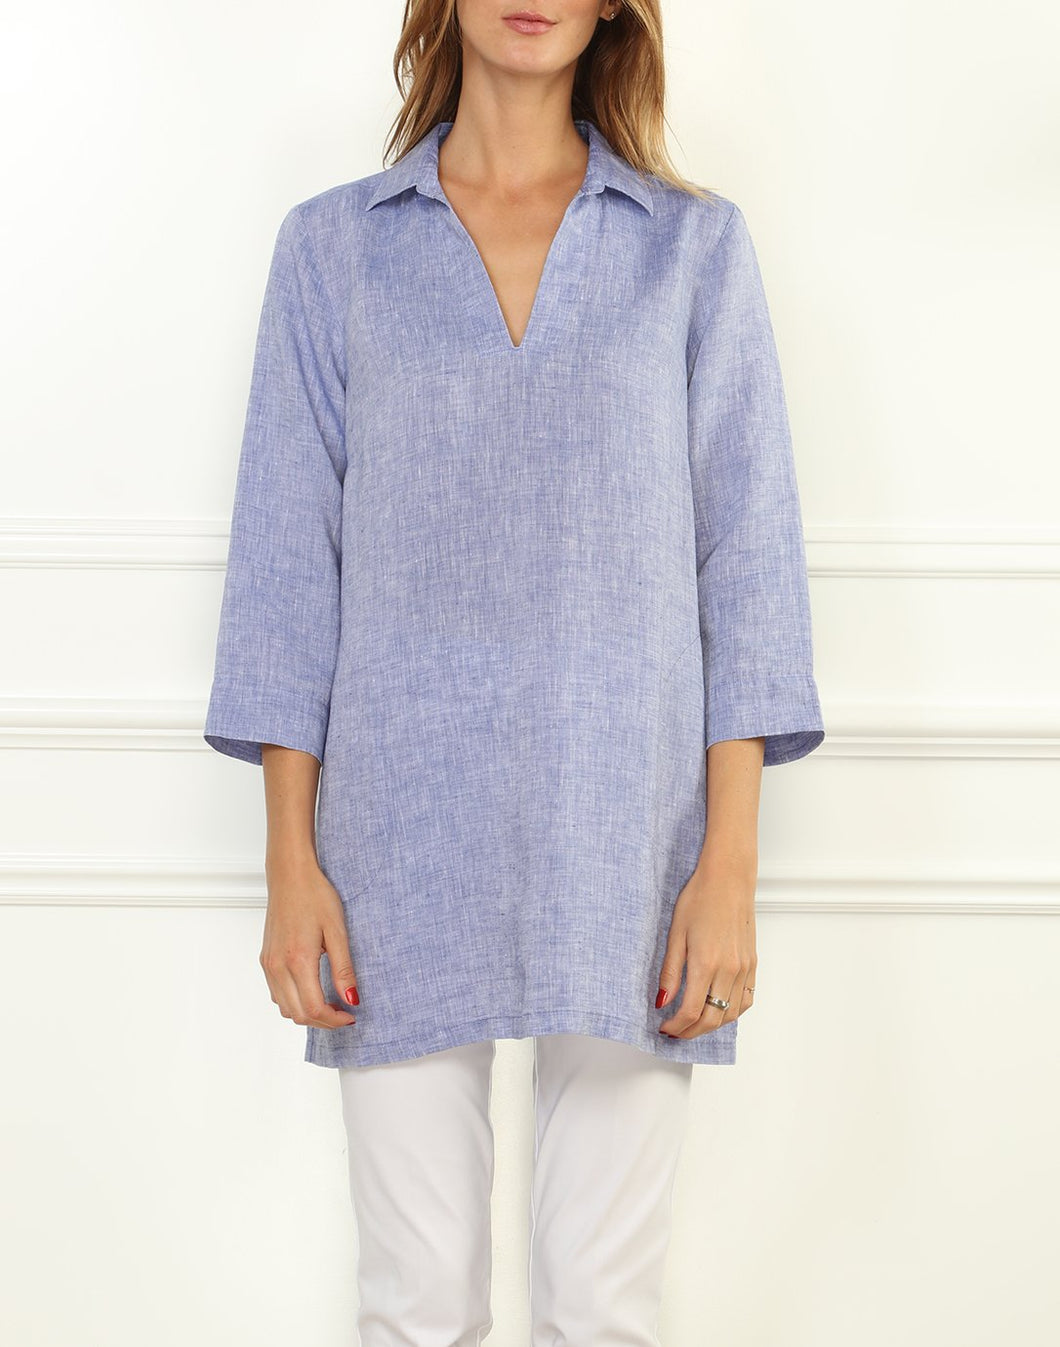 Mira Luxe Linen 3/4 Sleeve Button Back Tunic